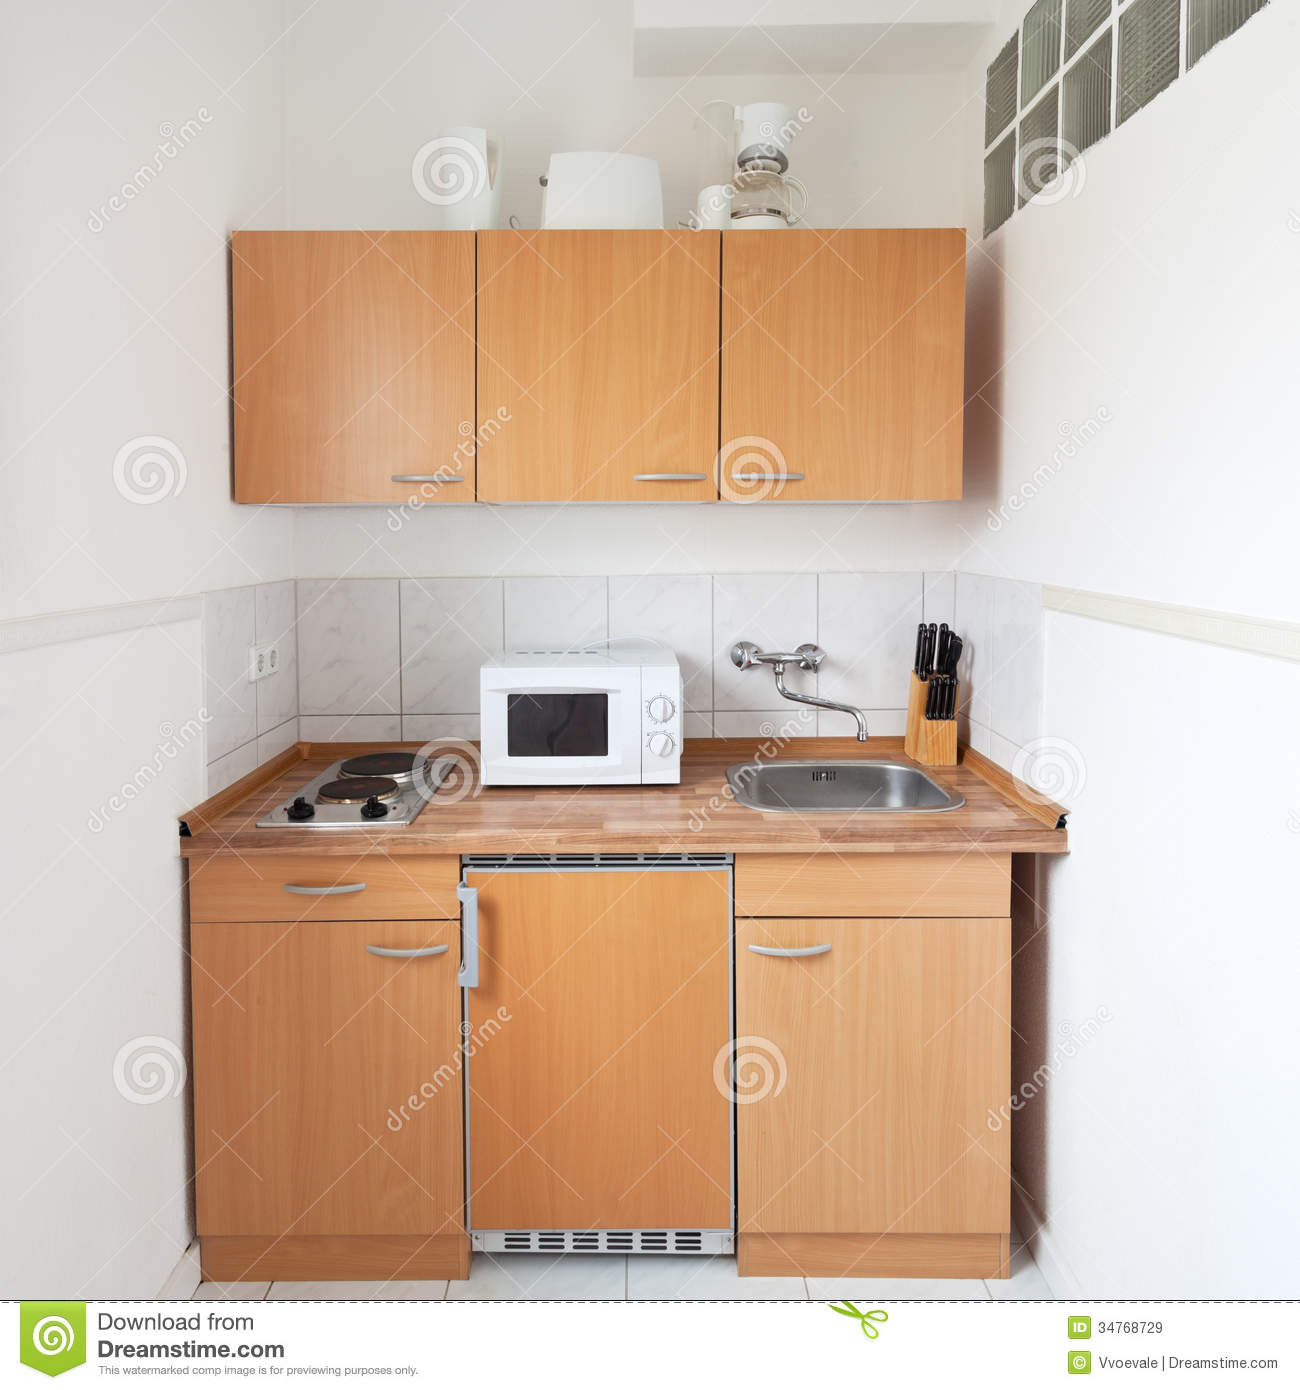 Simple kitchen with furniture set royalty free stock for Kitchen setting pictures